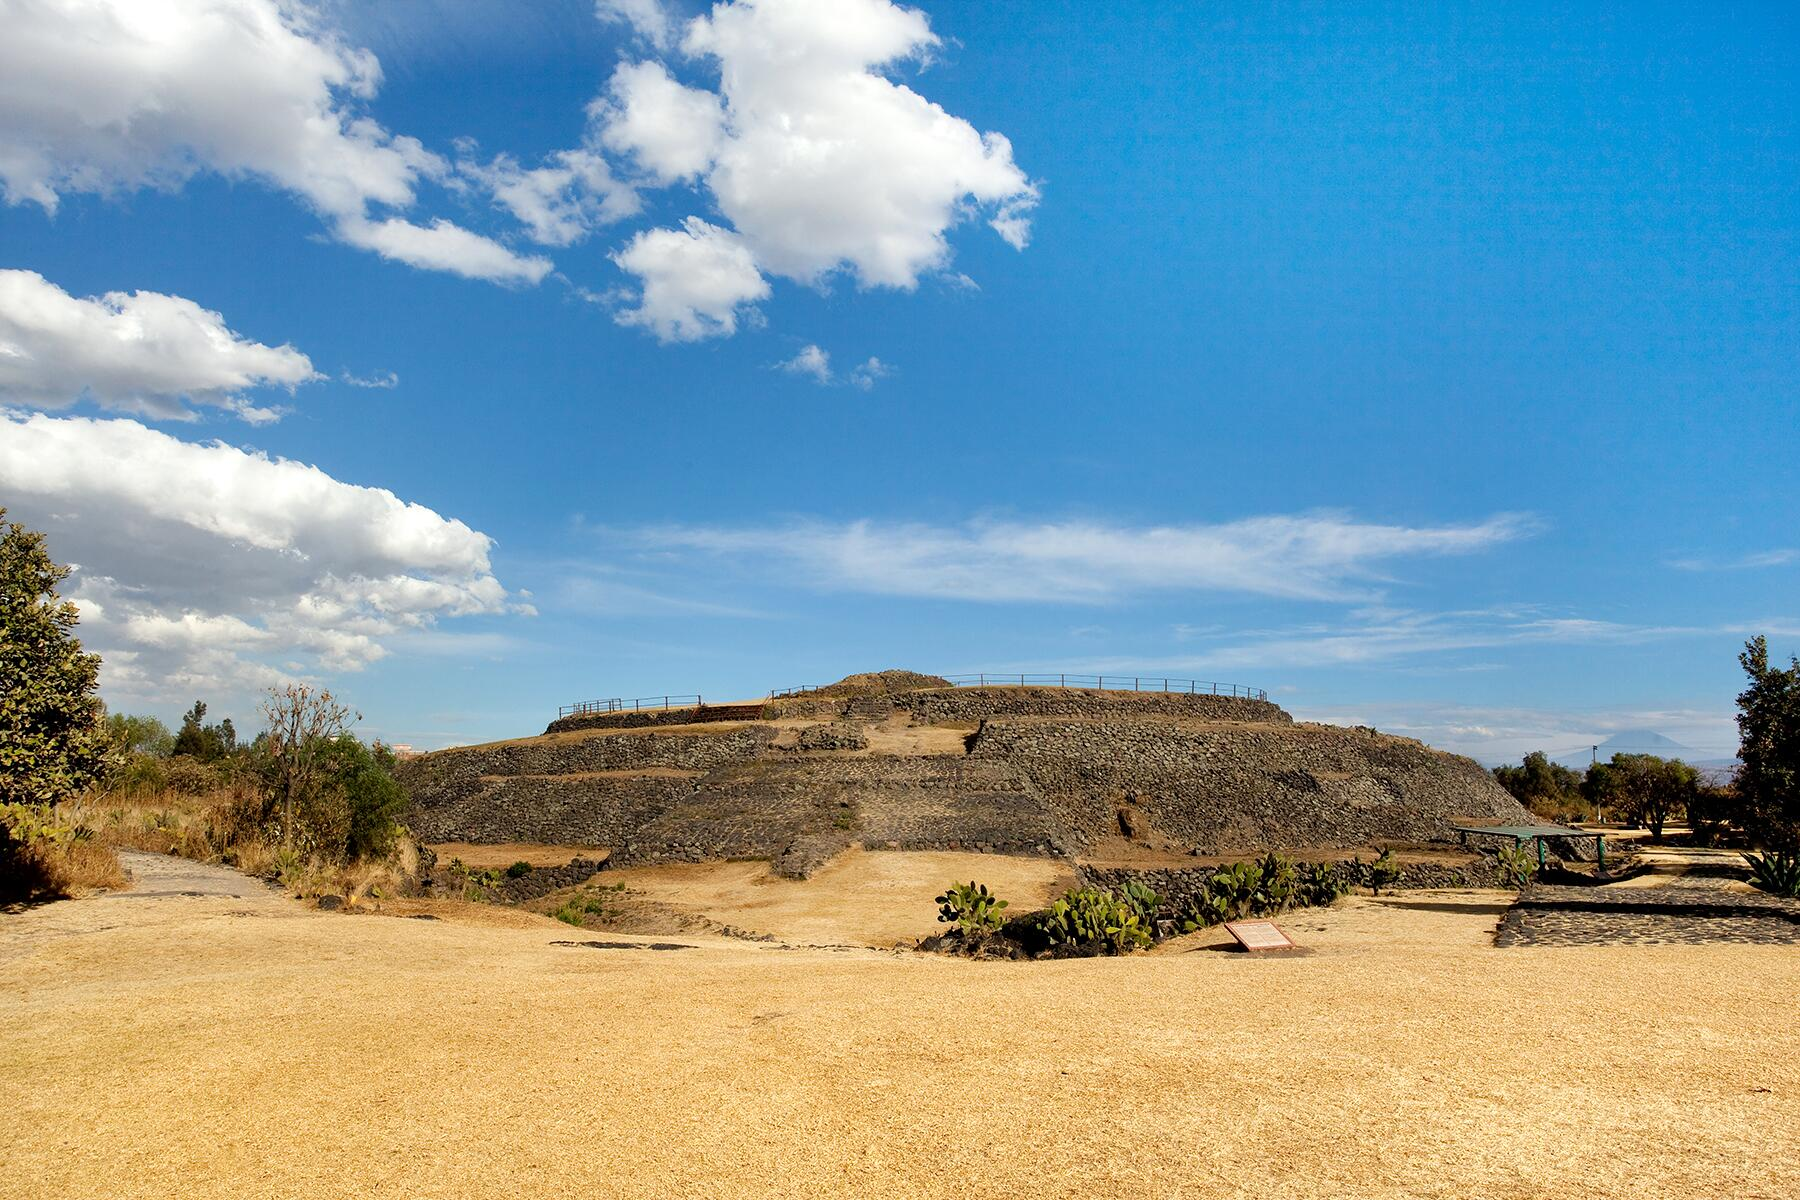 03_OldestManmadeStructure__Cuicuilco_shutterstock_68292421